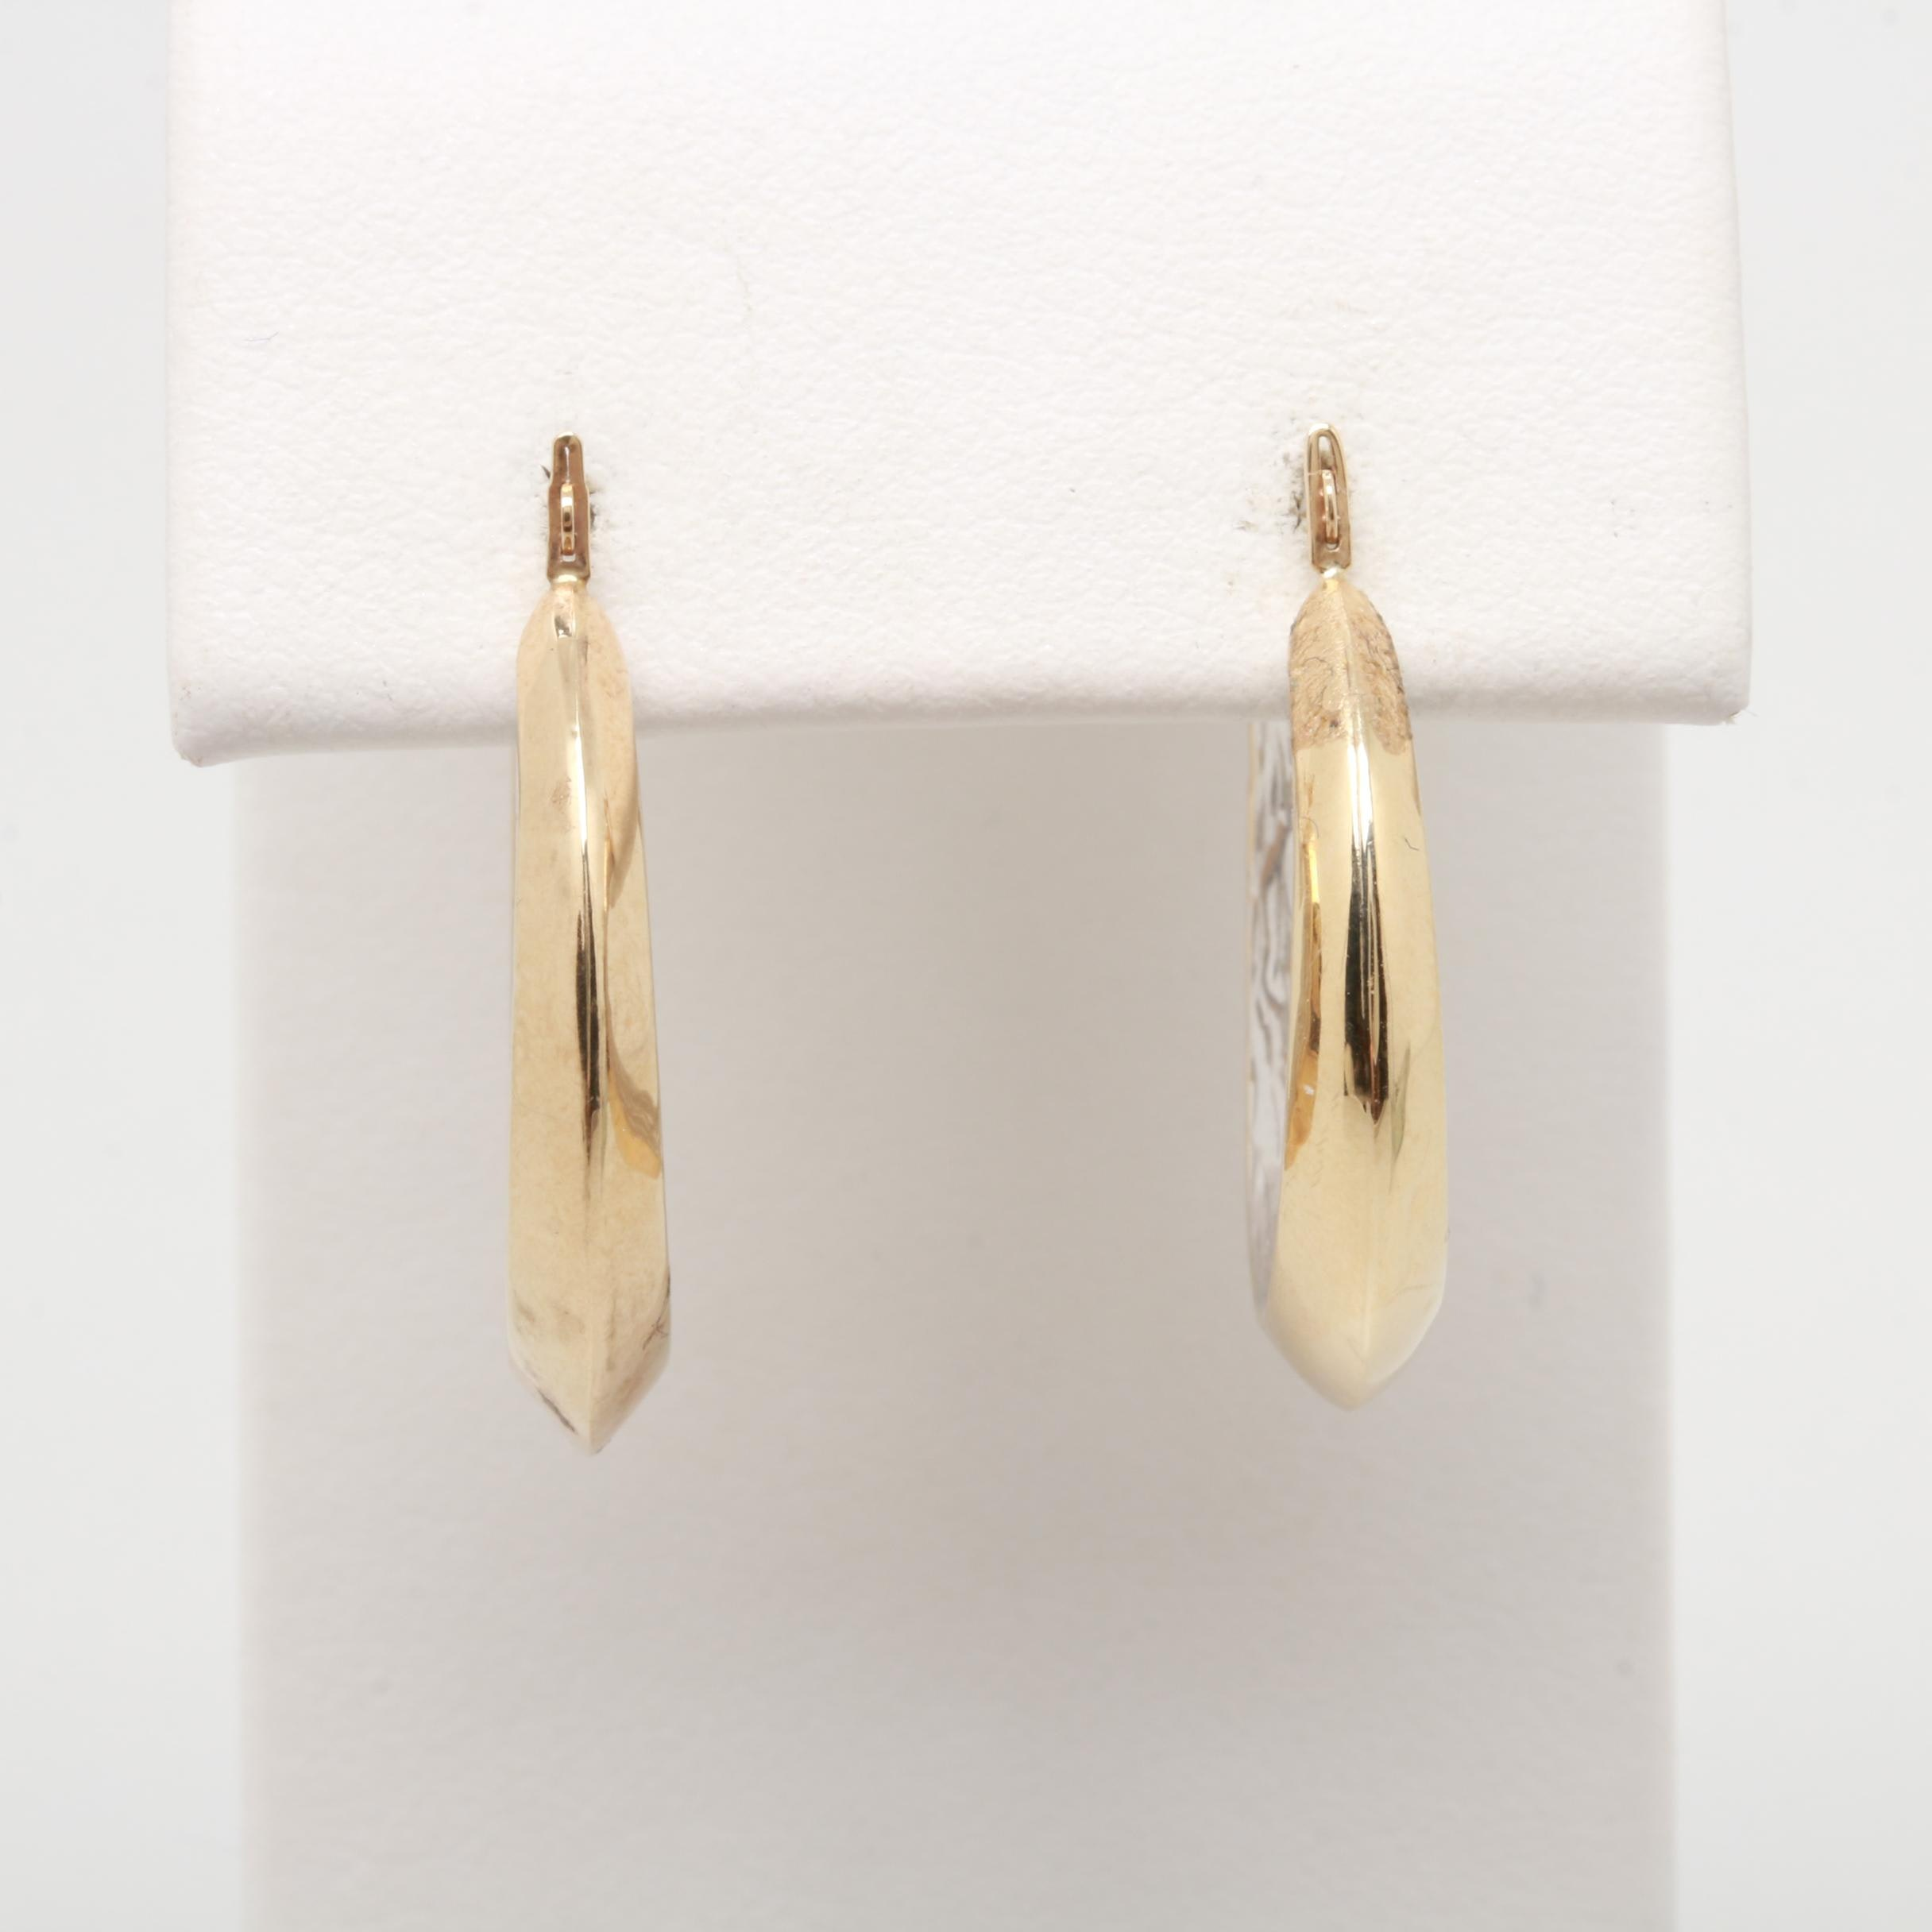 10K White and Yellow Gold Textured Hoop Earrings